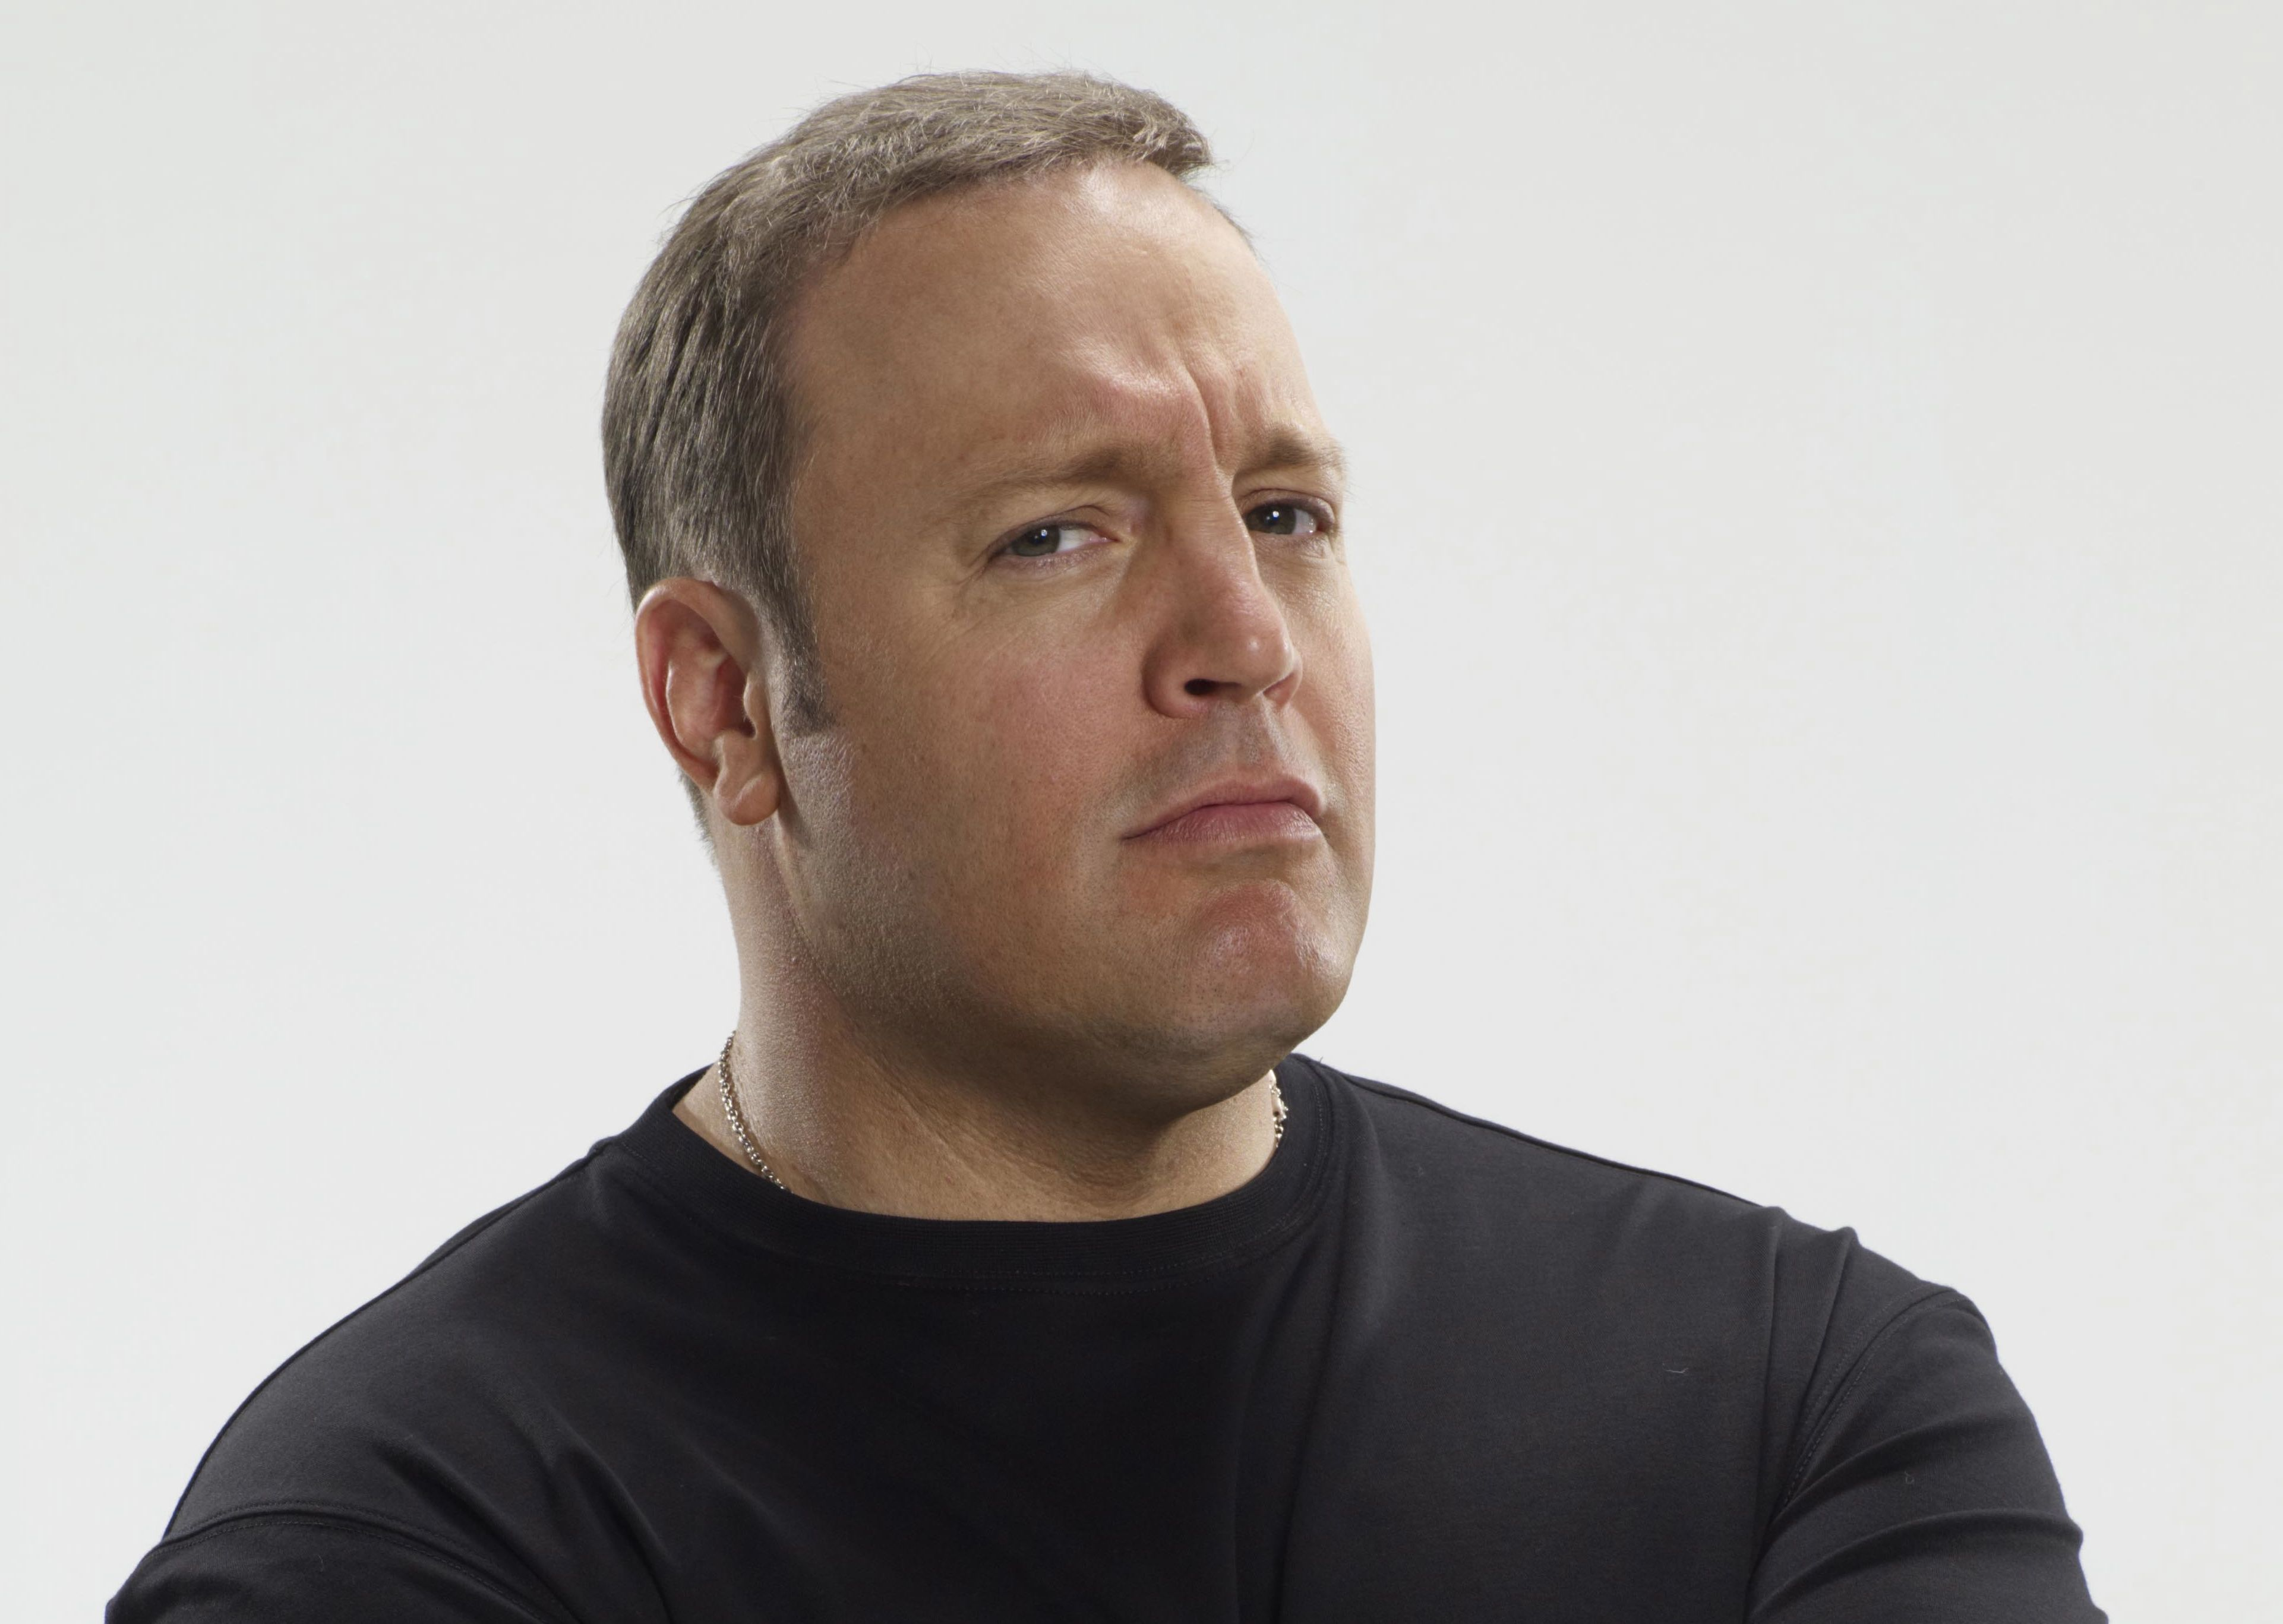 http://hollywoodiconmagazine.com/wp-content/uploads/2012/02/Kevin-James-20122.jpg